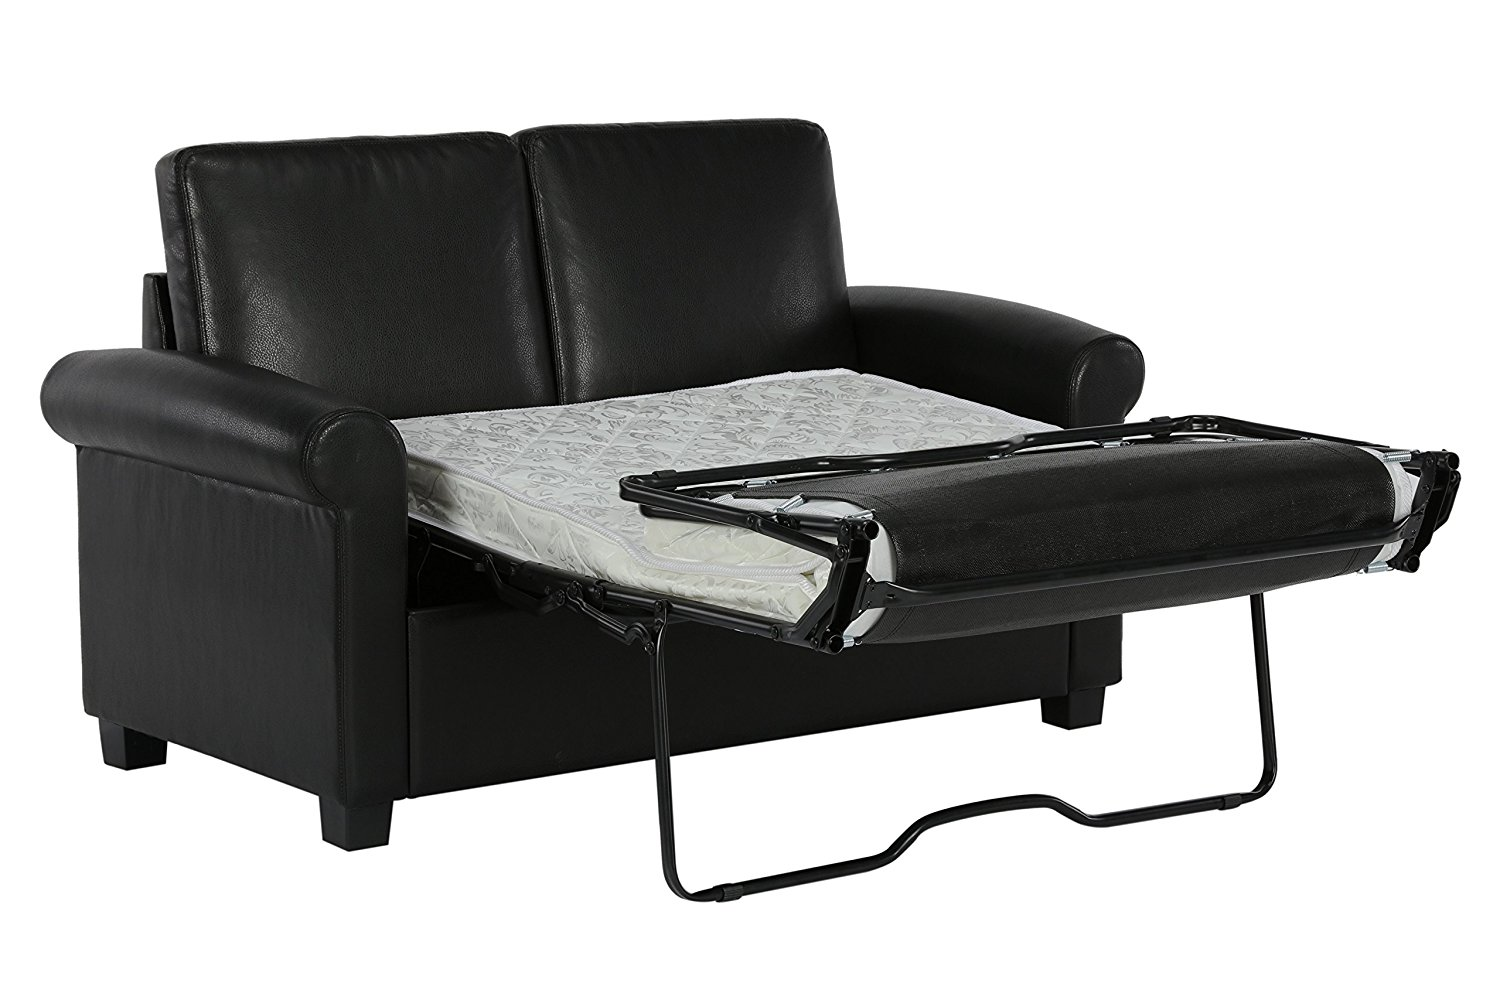 A Leather Sleeper Sofa Convenience Comfort And Class In One Cool Ideas For Home